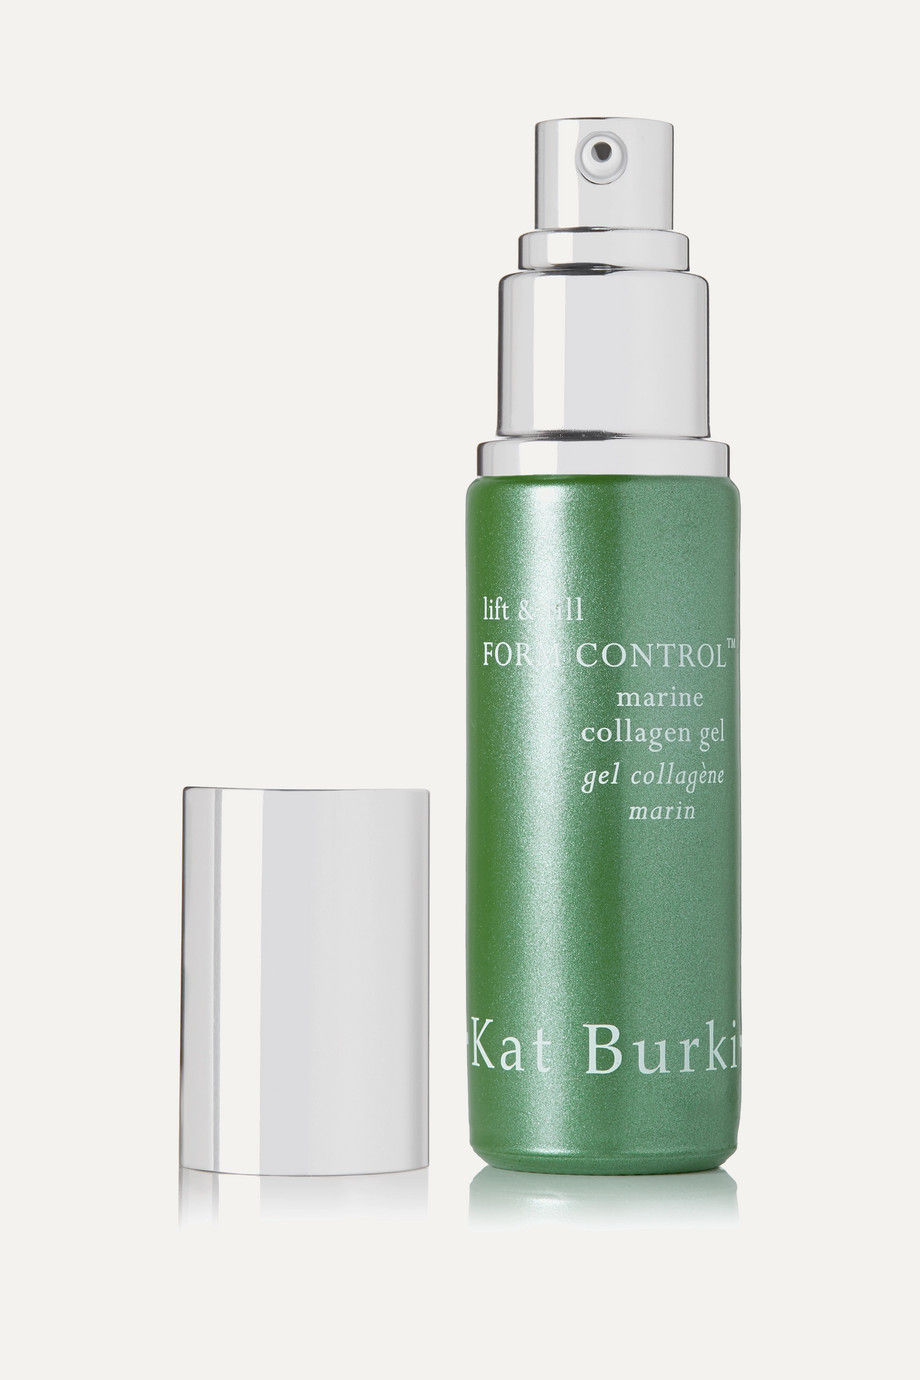 KAT BURKI Form Control Marine Collagen Gel, 30ml